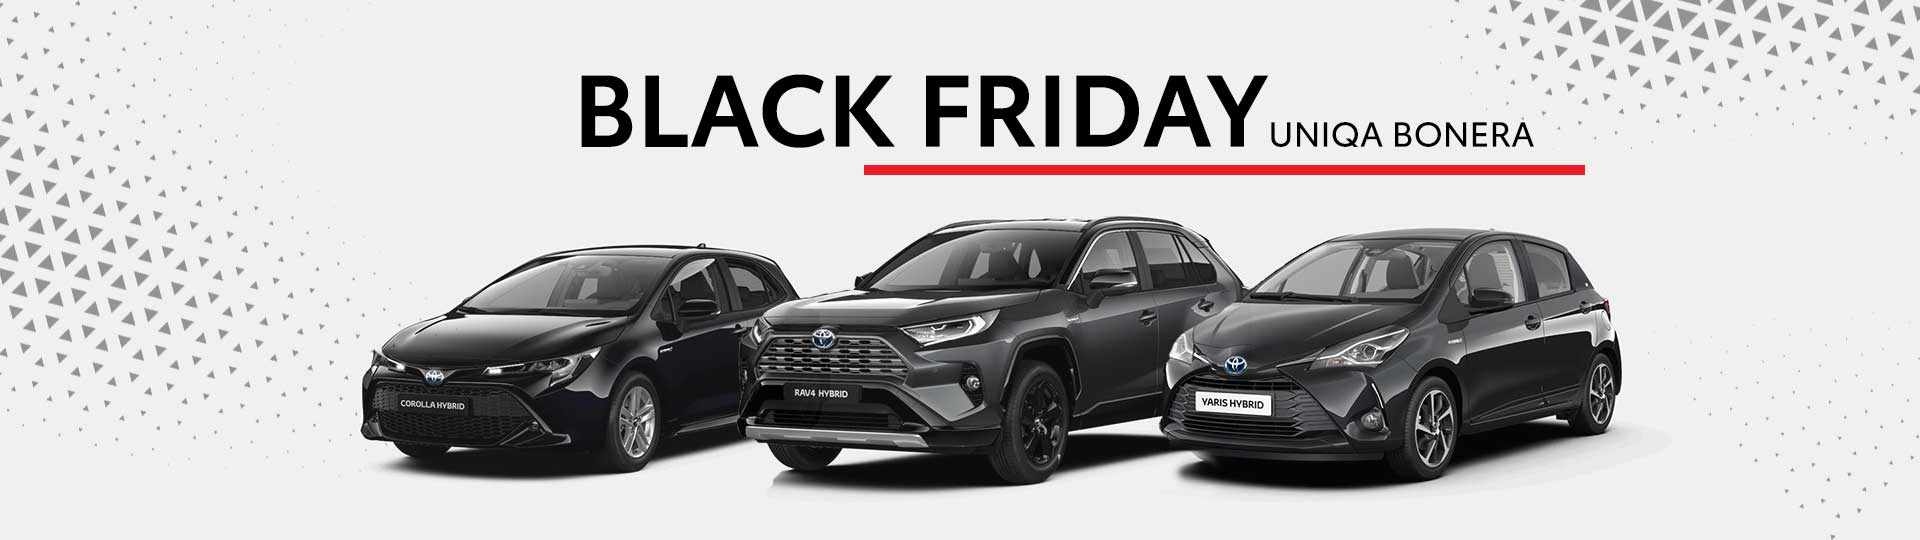 hd_toyota_black_friday_2.jpg